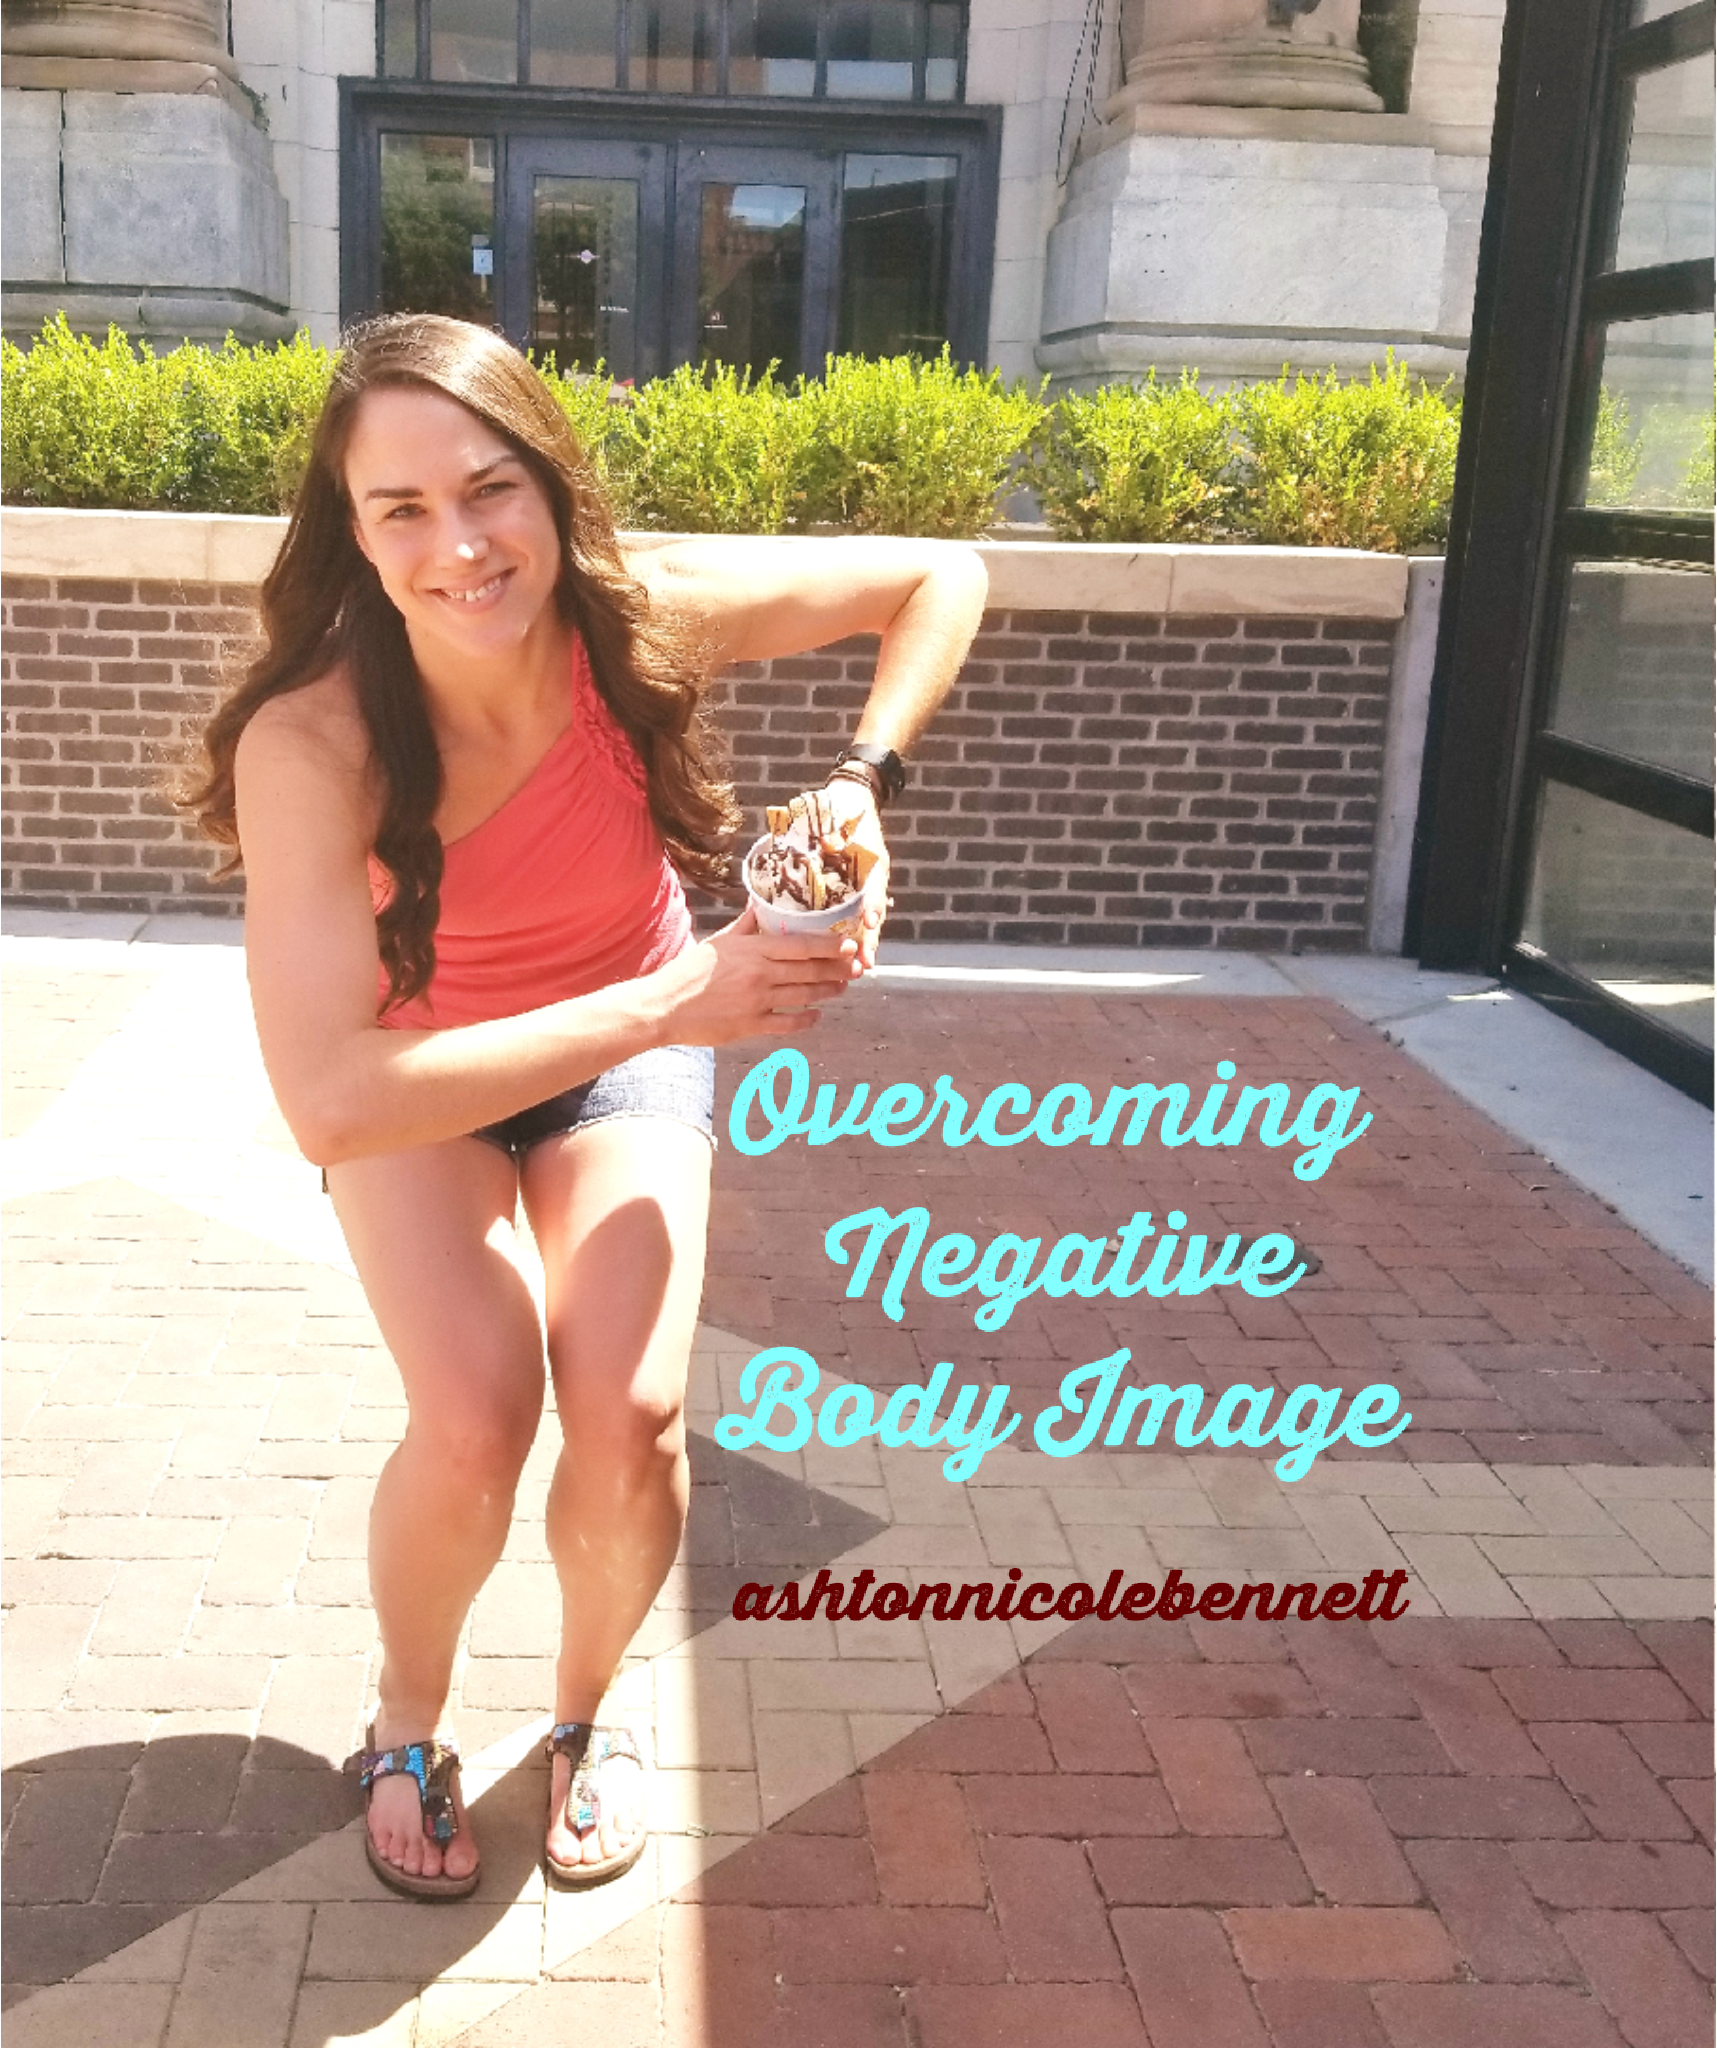 Have you struggled to overcome negative body image? Here are Twelve tips that have helped me create a positive body image.